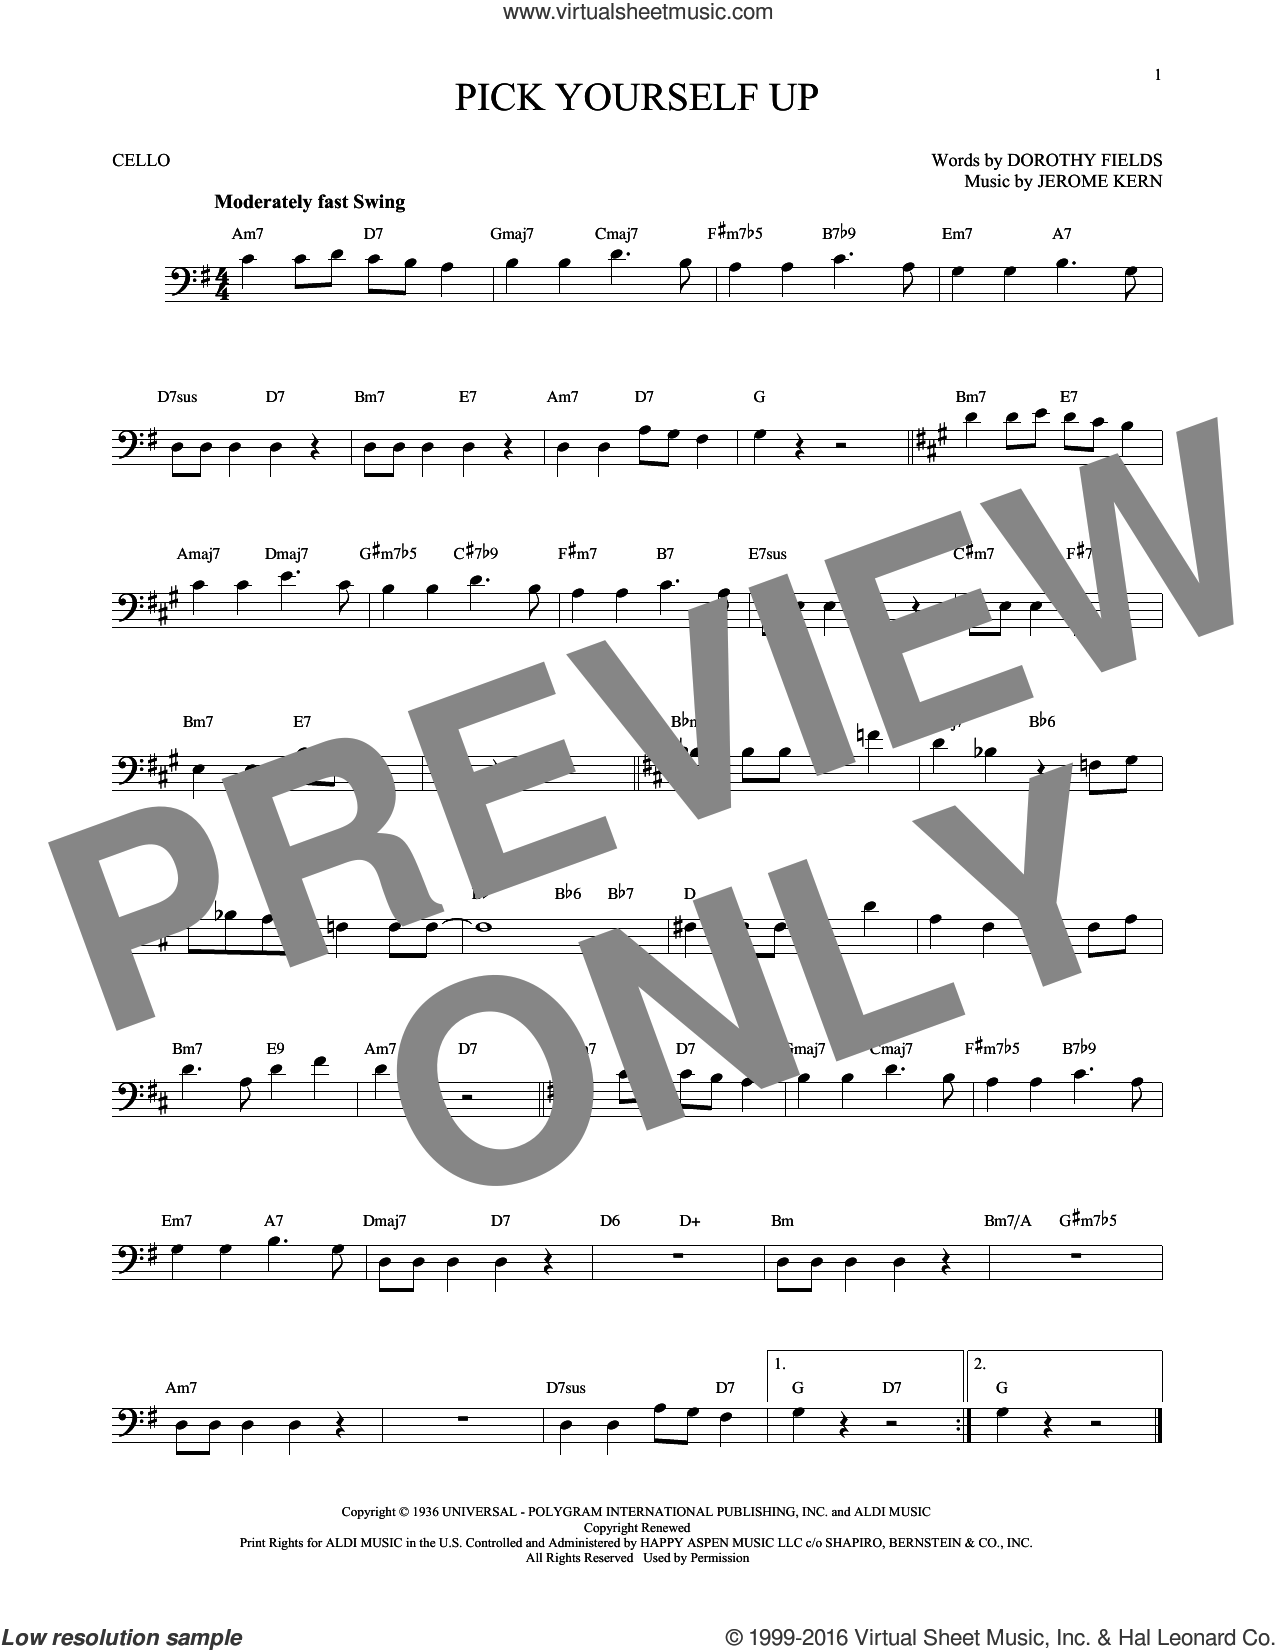 Pick Yourself Up sheet music for cello solo by Dorothy Fields and Jerome Kern. Score Image Preview.